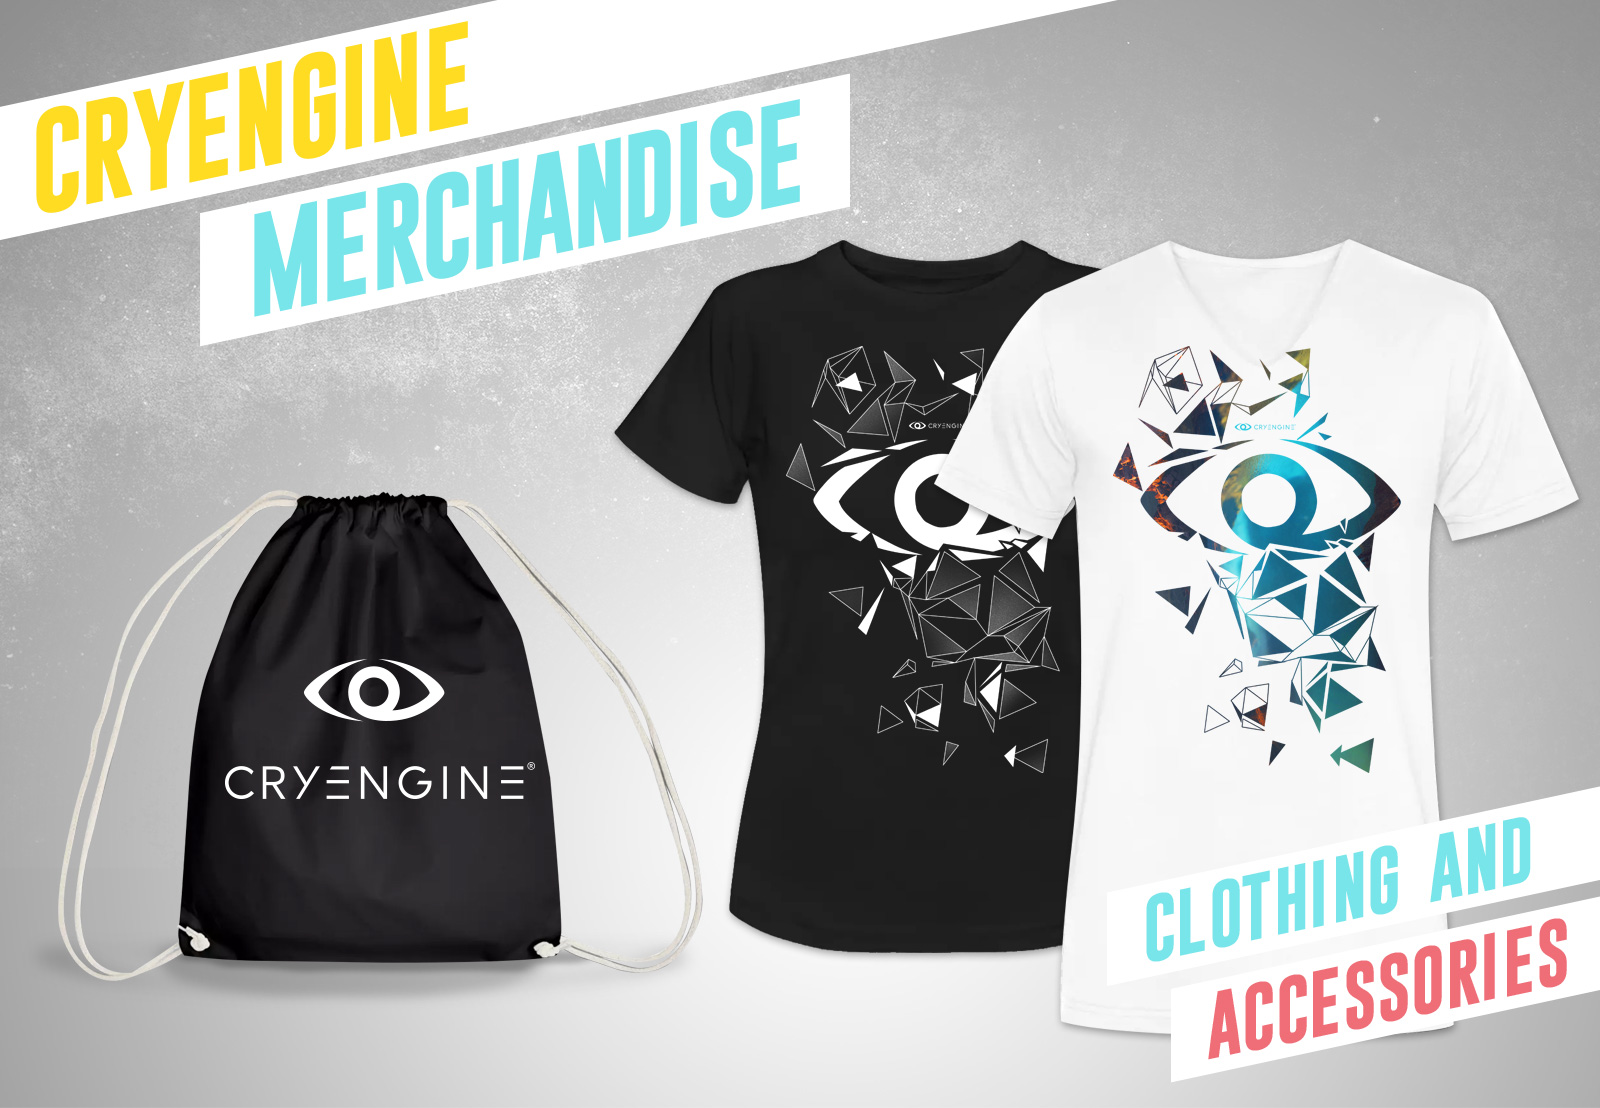 Announcing CRYENGINE merch!